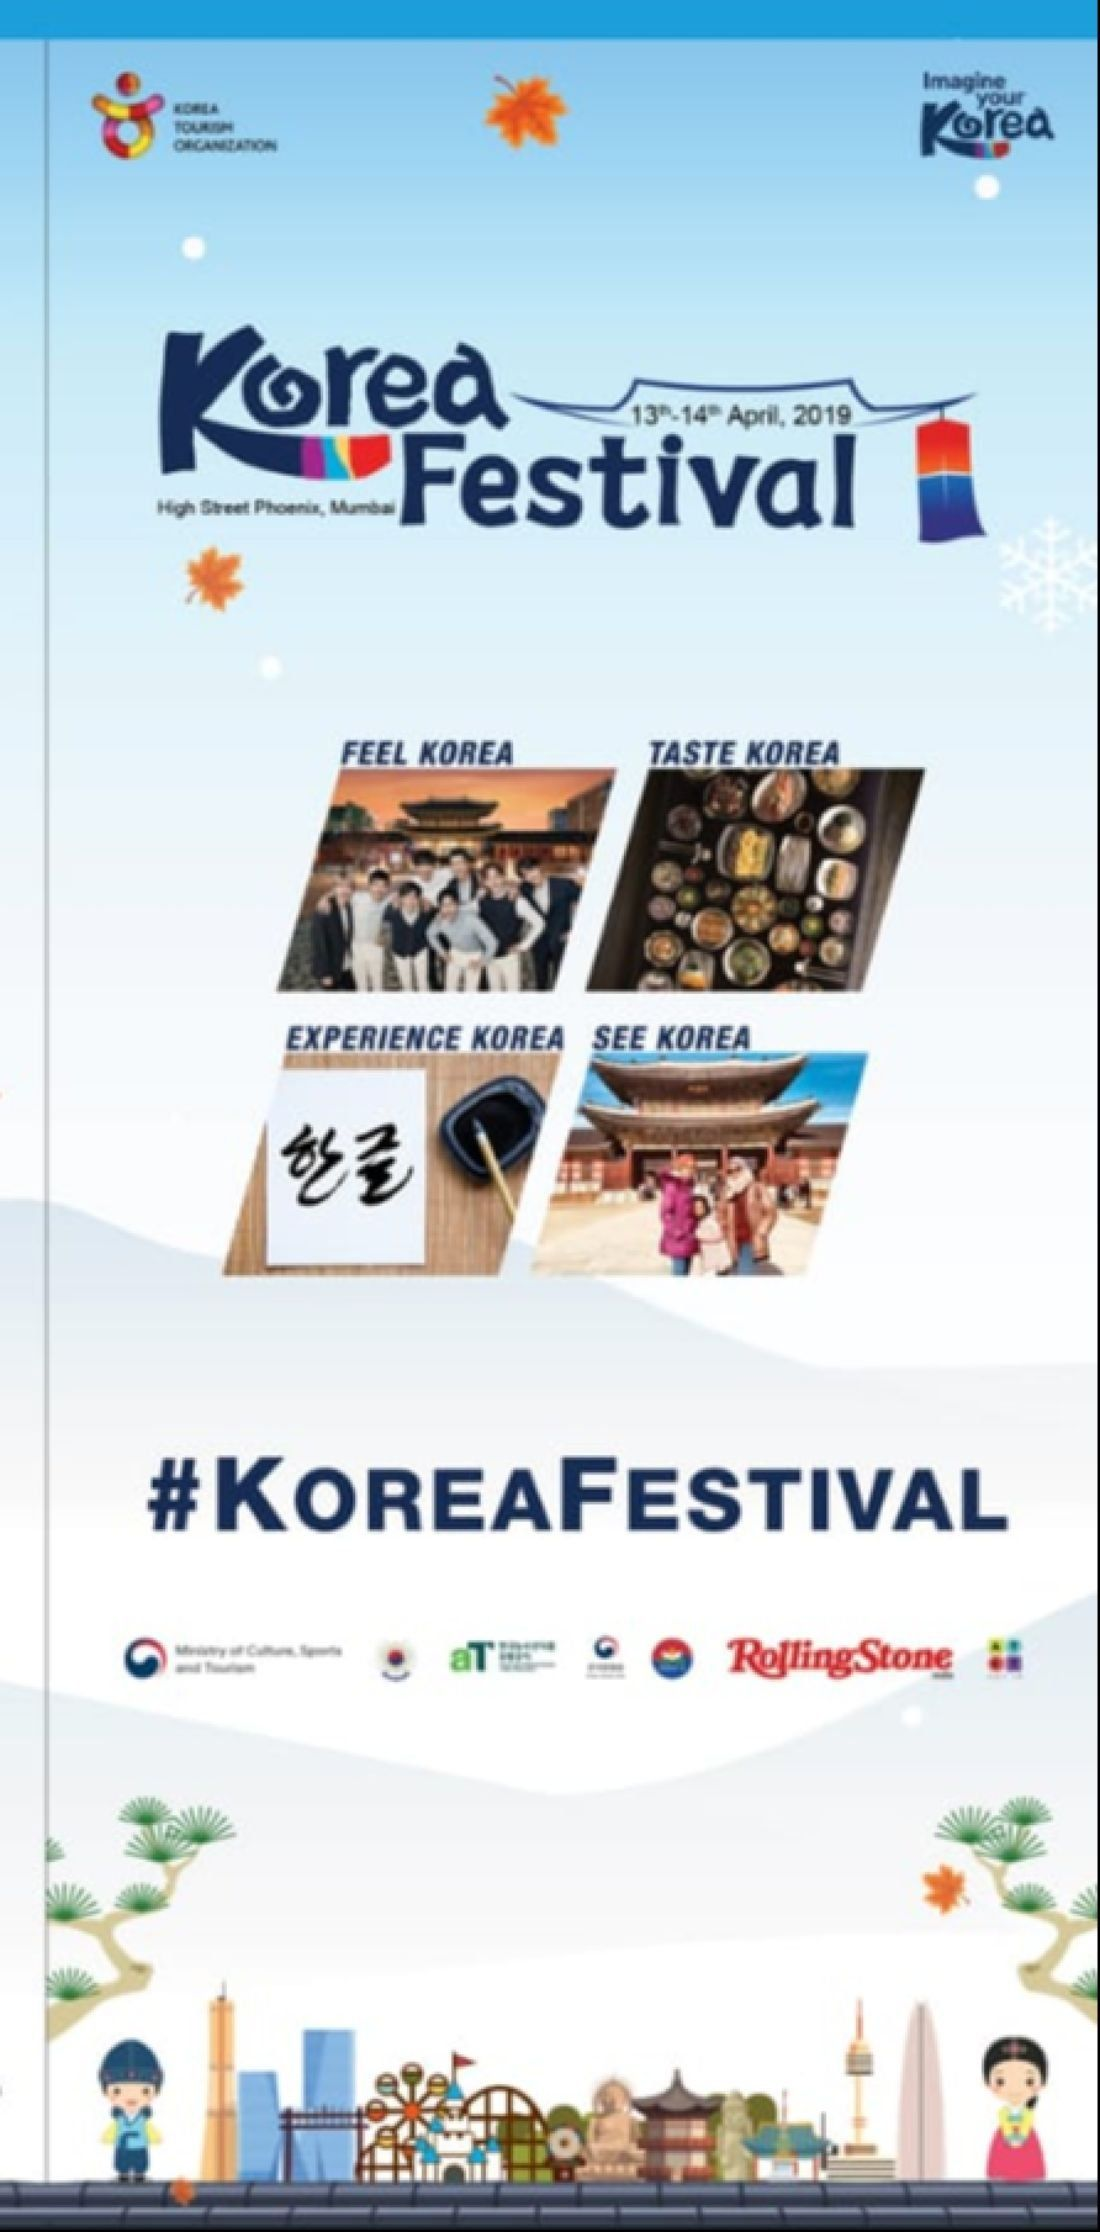 Korean Festival at High Street Phoenix | Mumbai